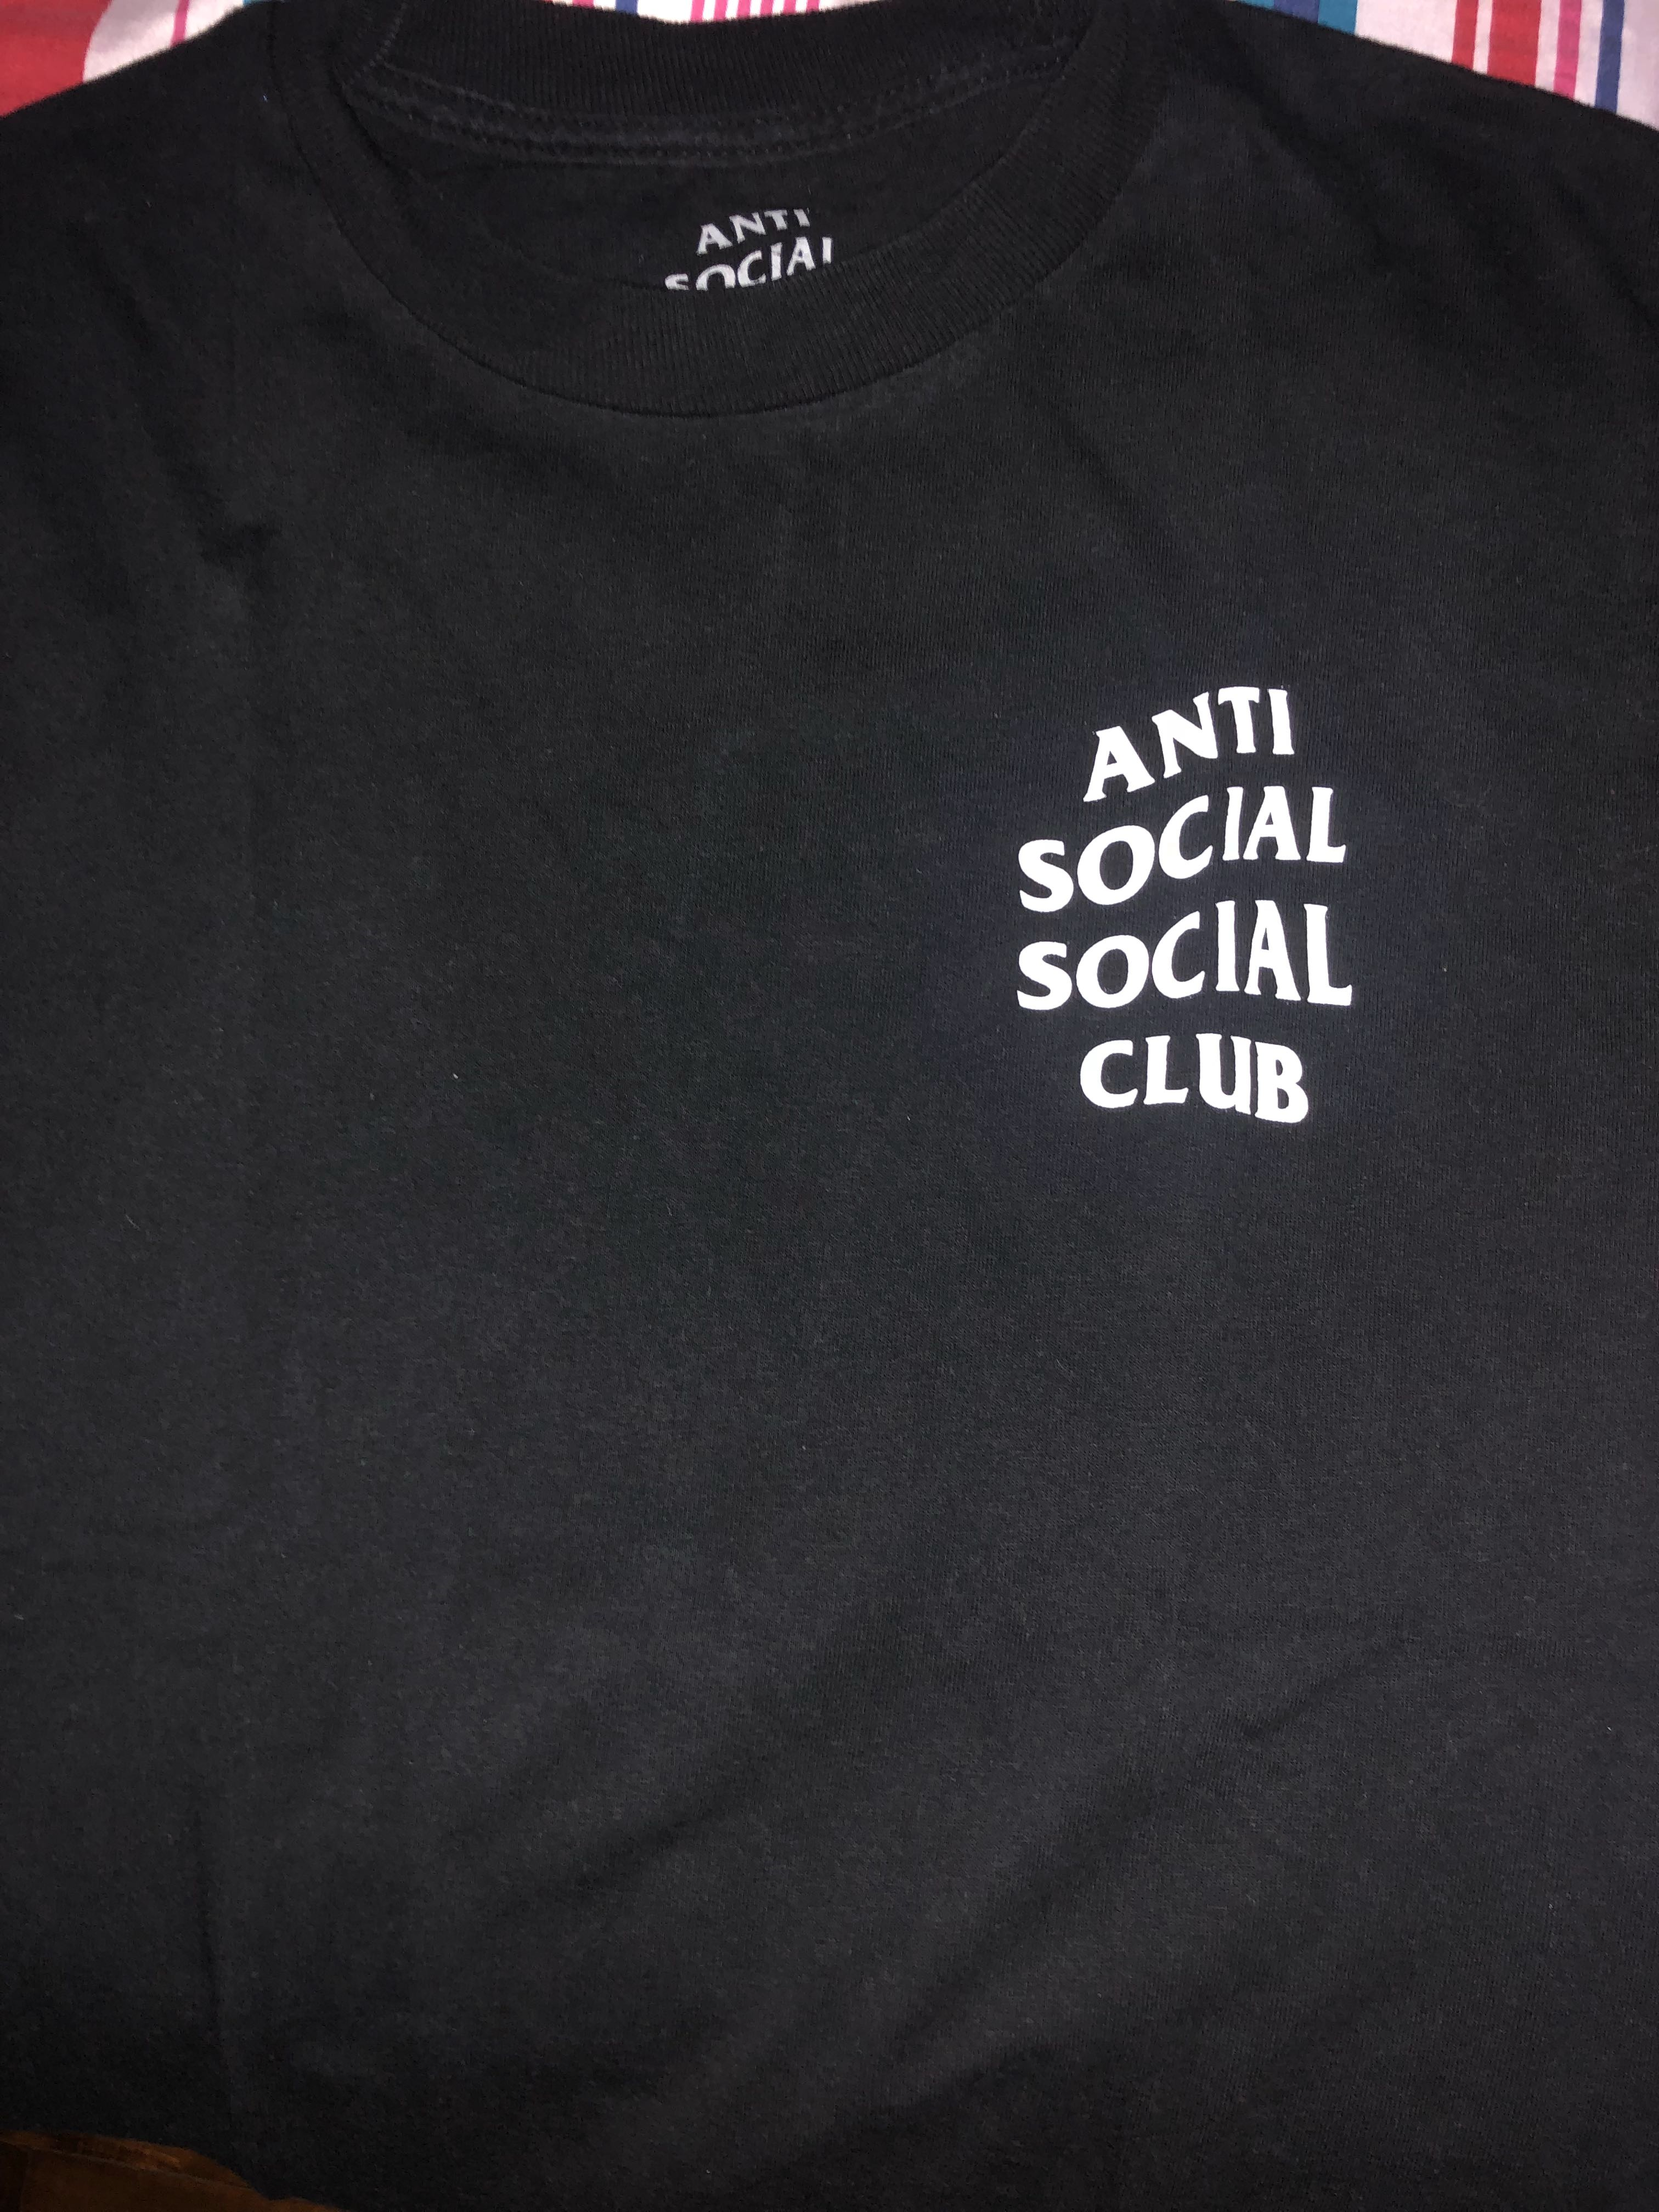 0cfddb166 Anti Social Social Club Logo Tee, Men's Fashion, Clothes, Tops on Carousell